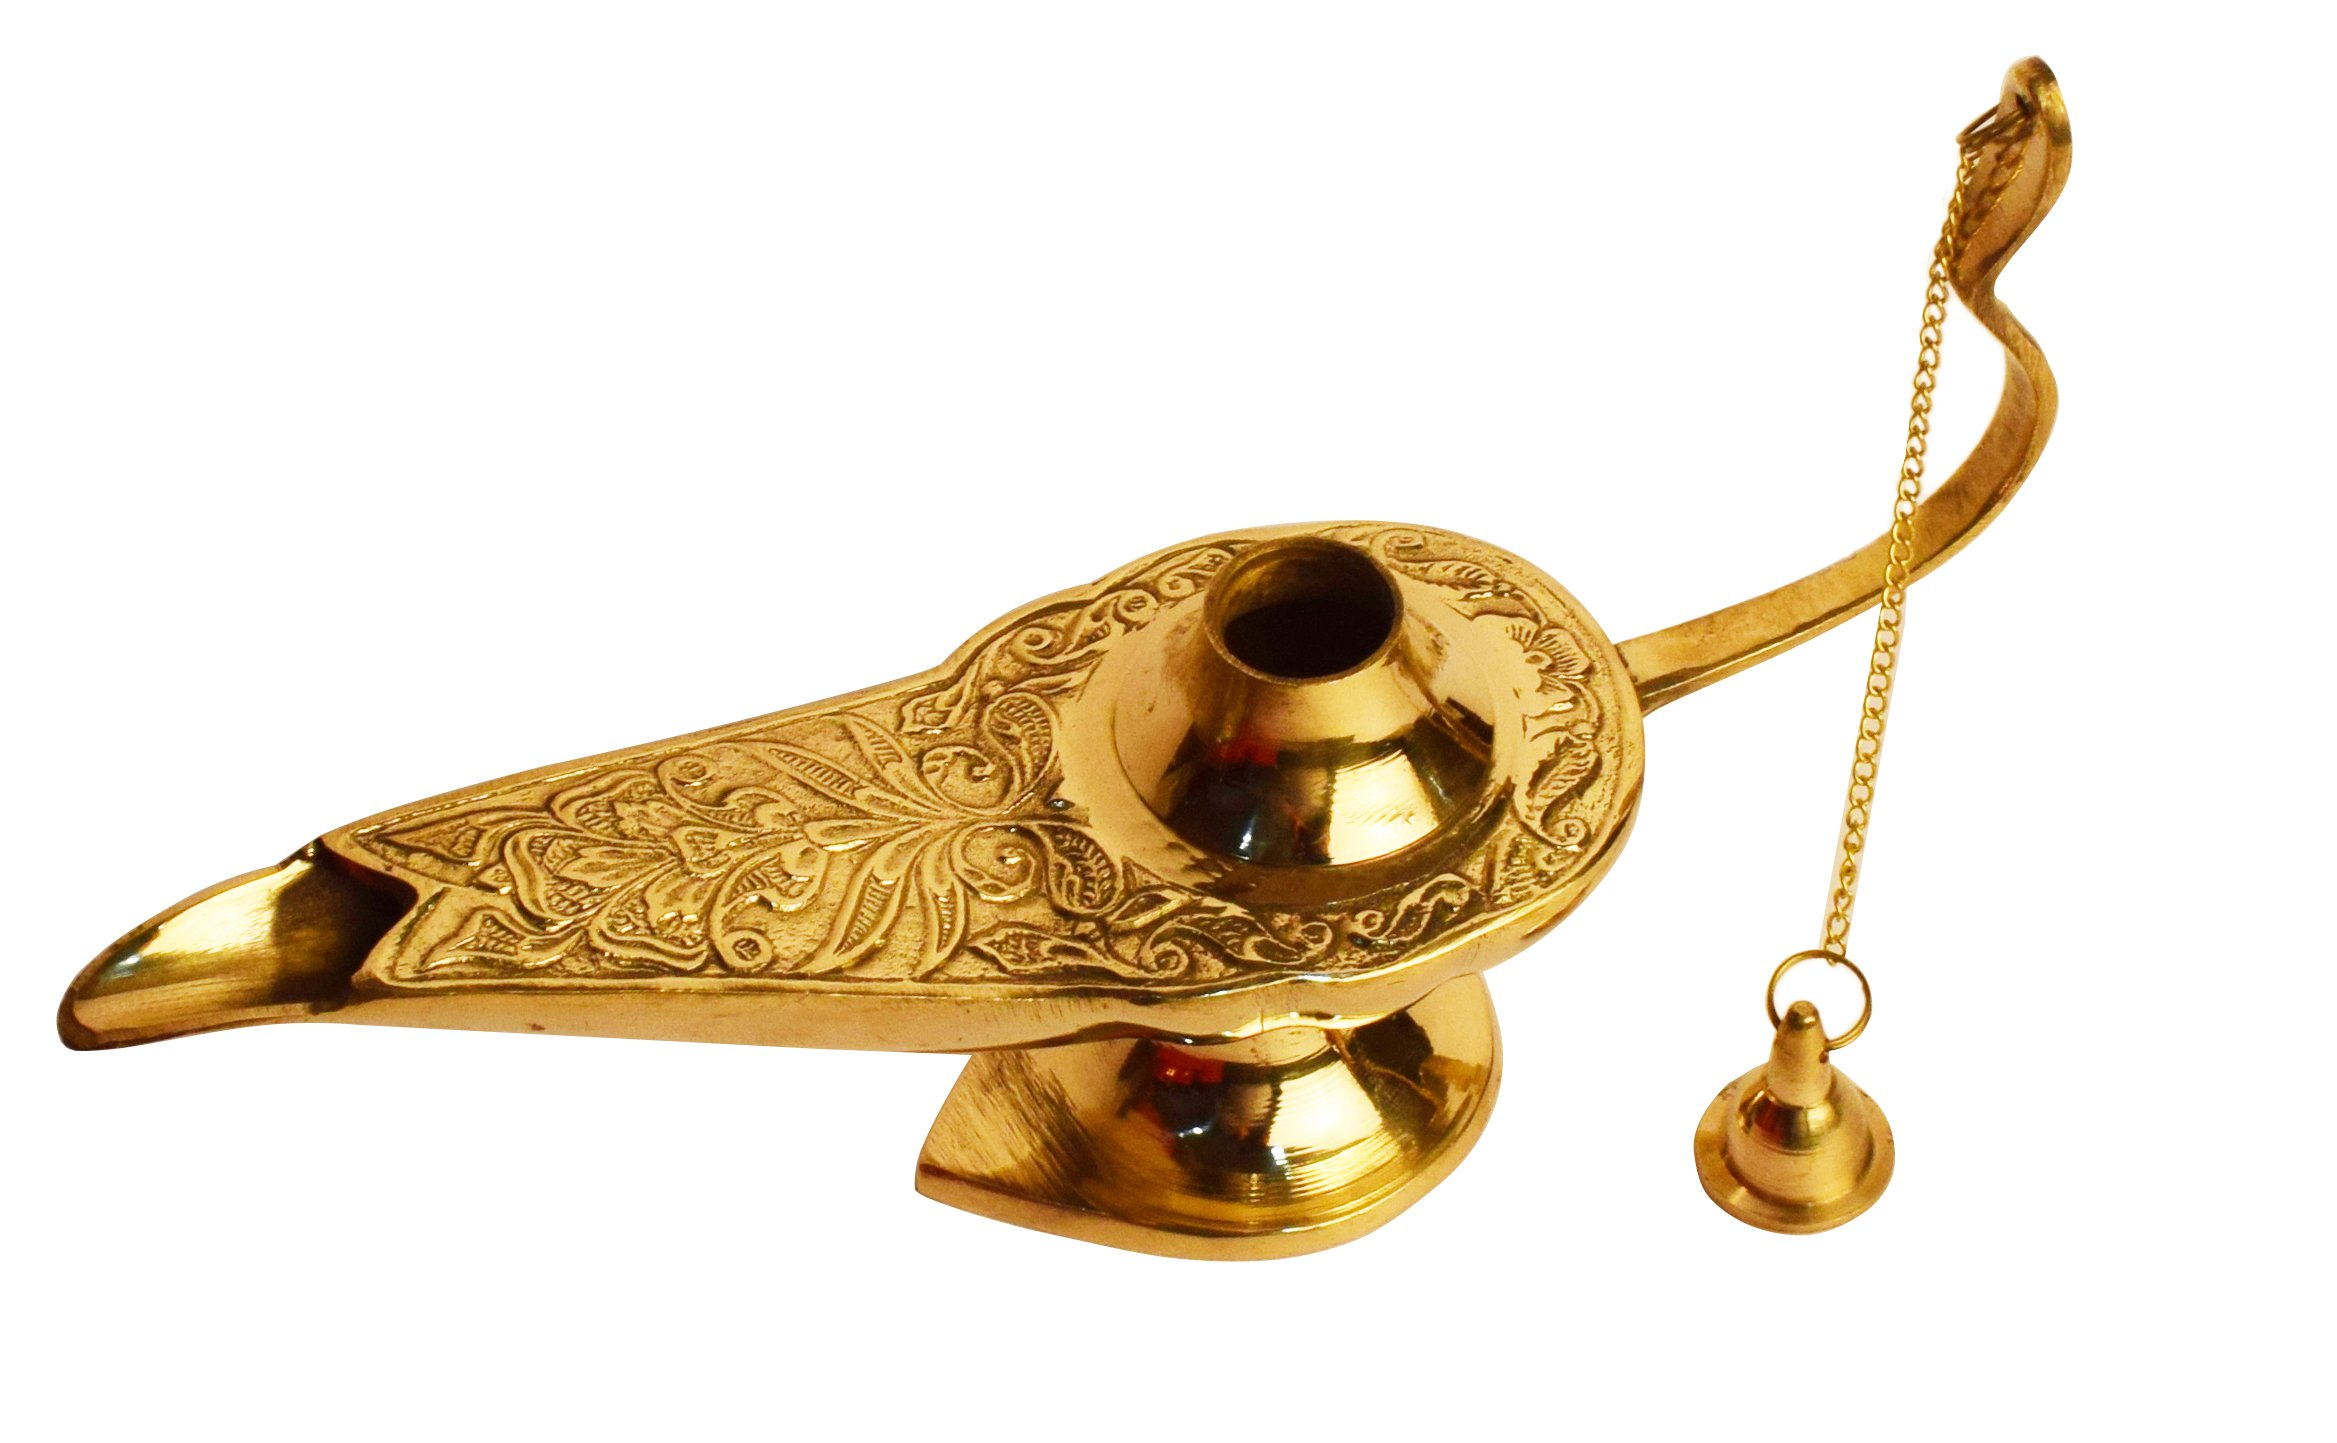 100% Pure Brass 7 INCH Aladdin Oil Lamp Genie / Ornate Chirag - Golden-Tone Brass - Vintage Toys & Gifts For Kids / Costume Party Home Decoration by Dflounz (Image #3)